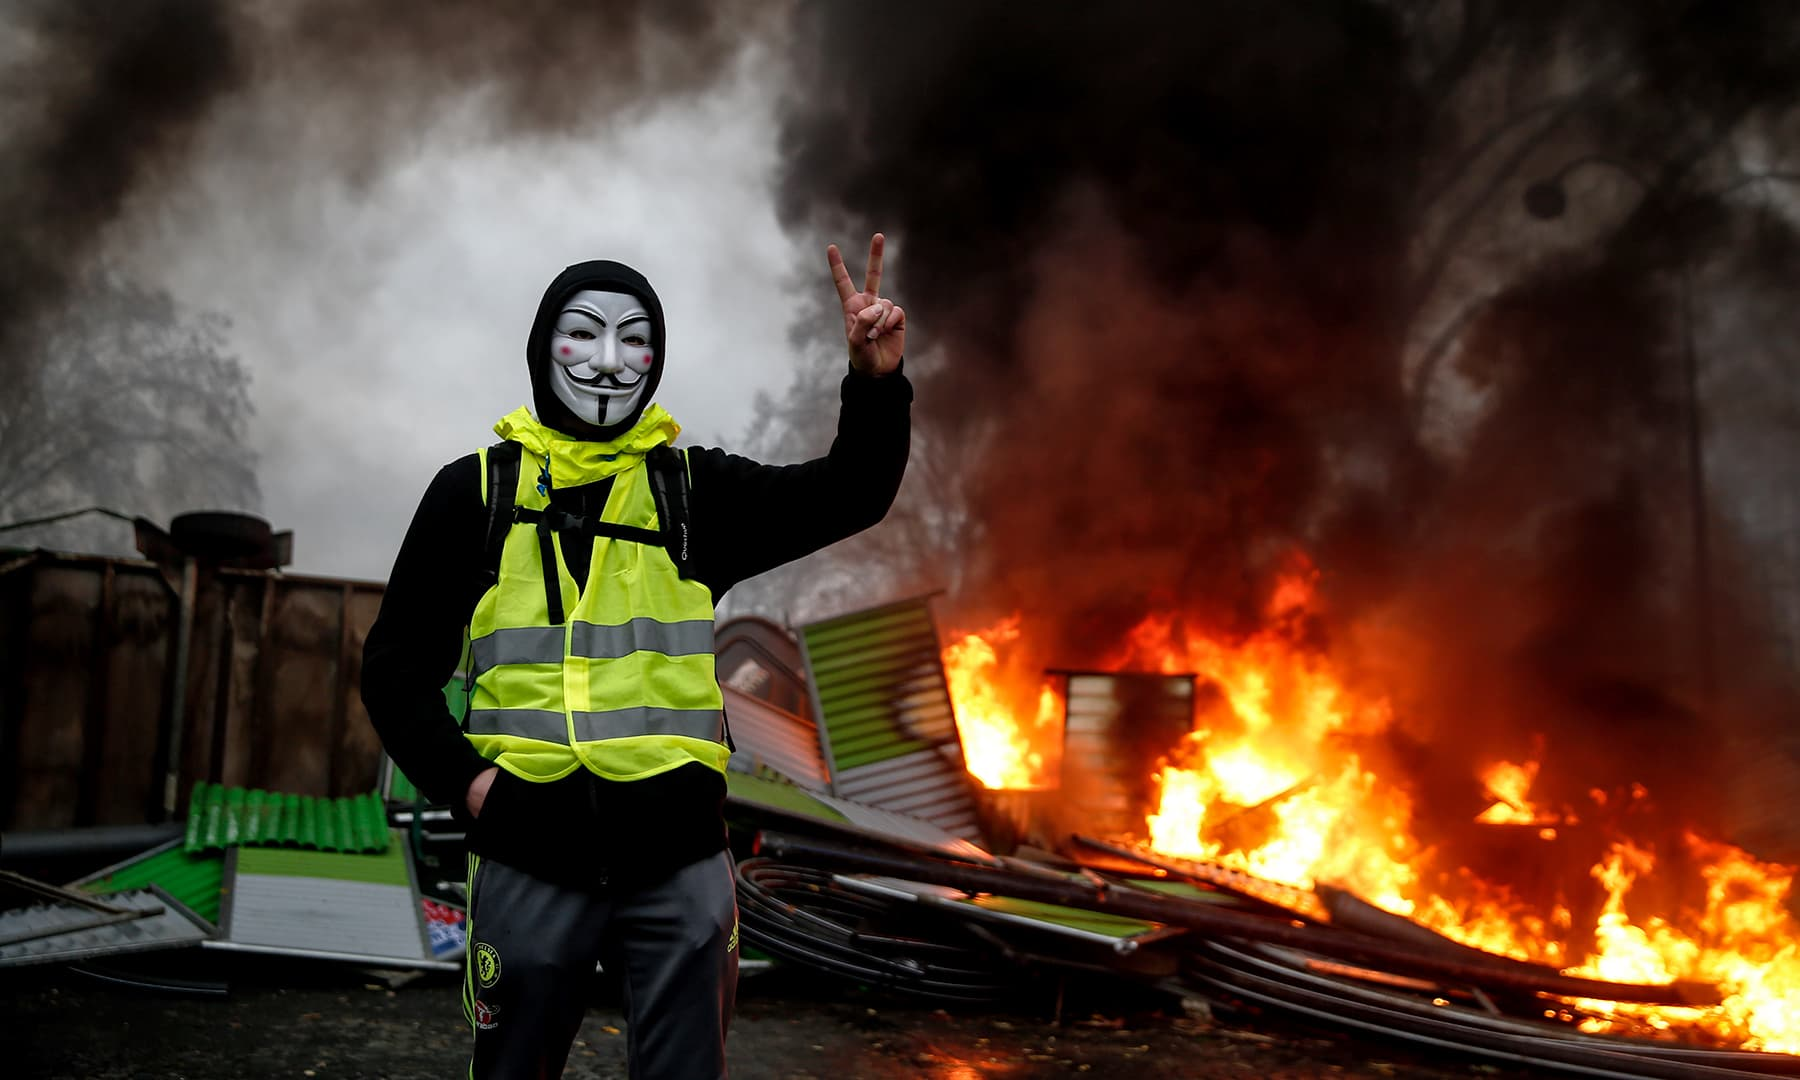 A protester wearing a Guy Fawkes mask makes the victory sign near a burning barricade. —AFP